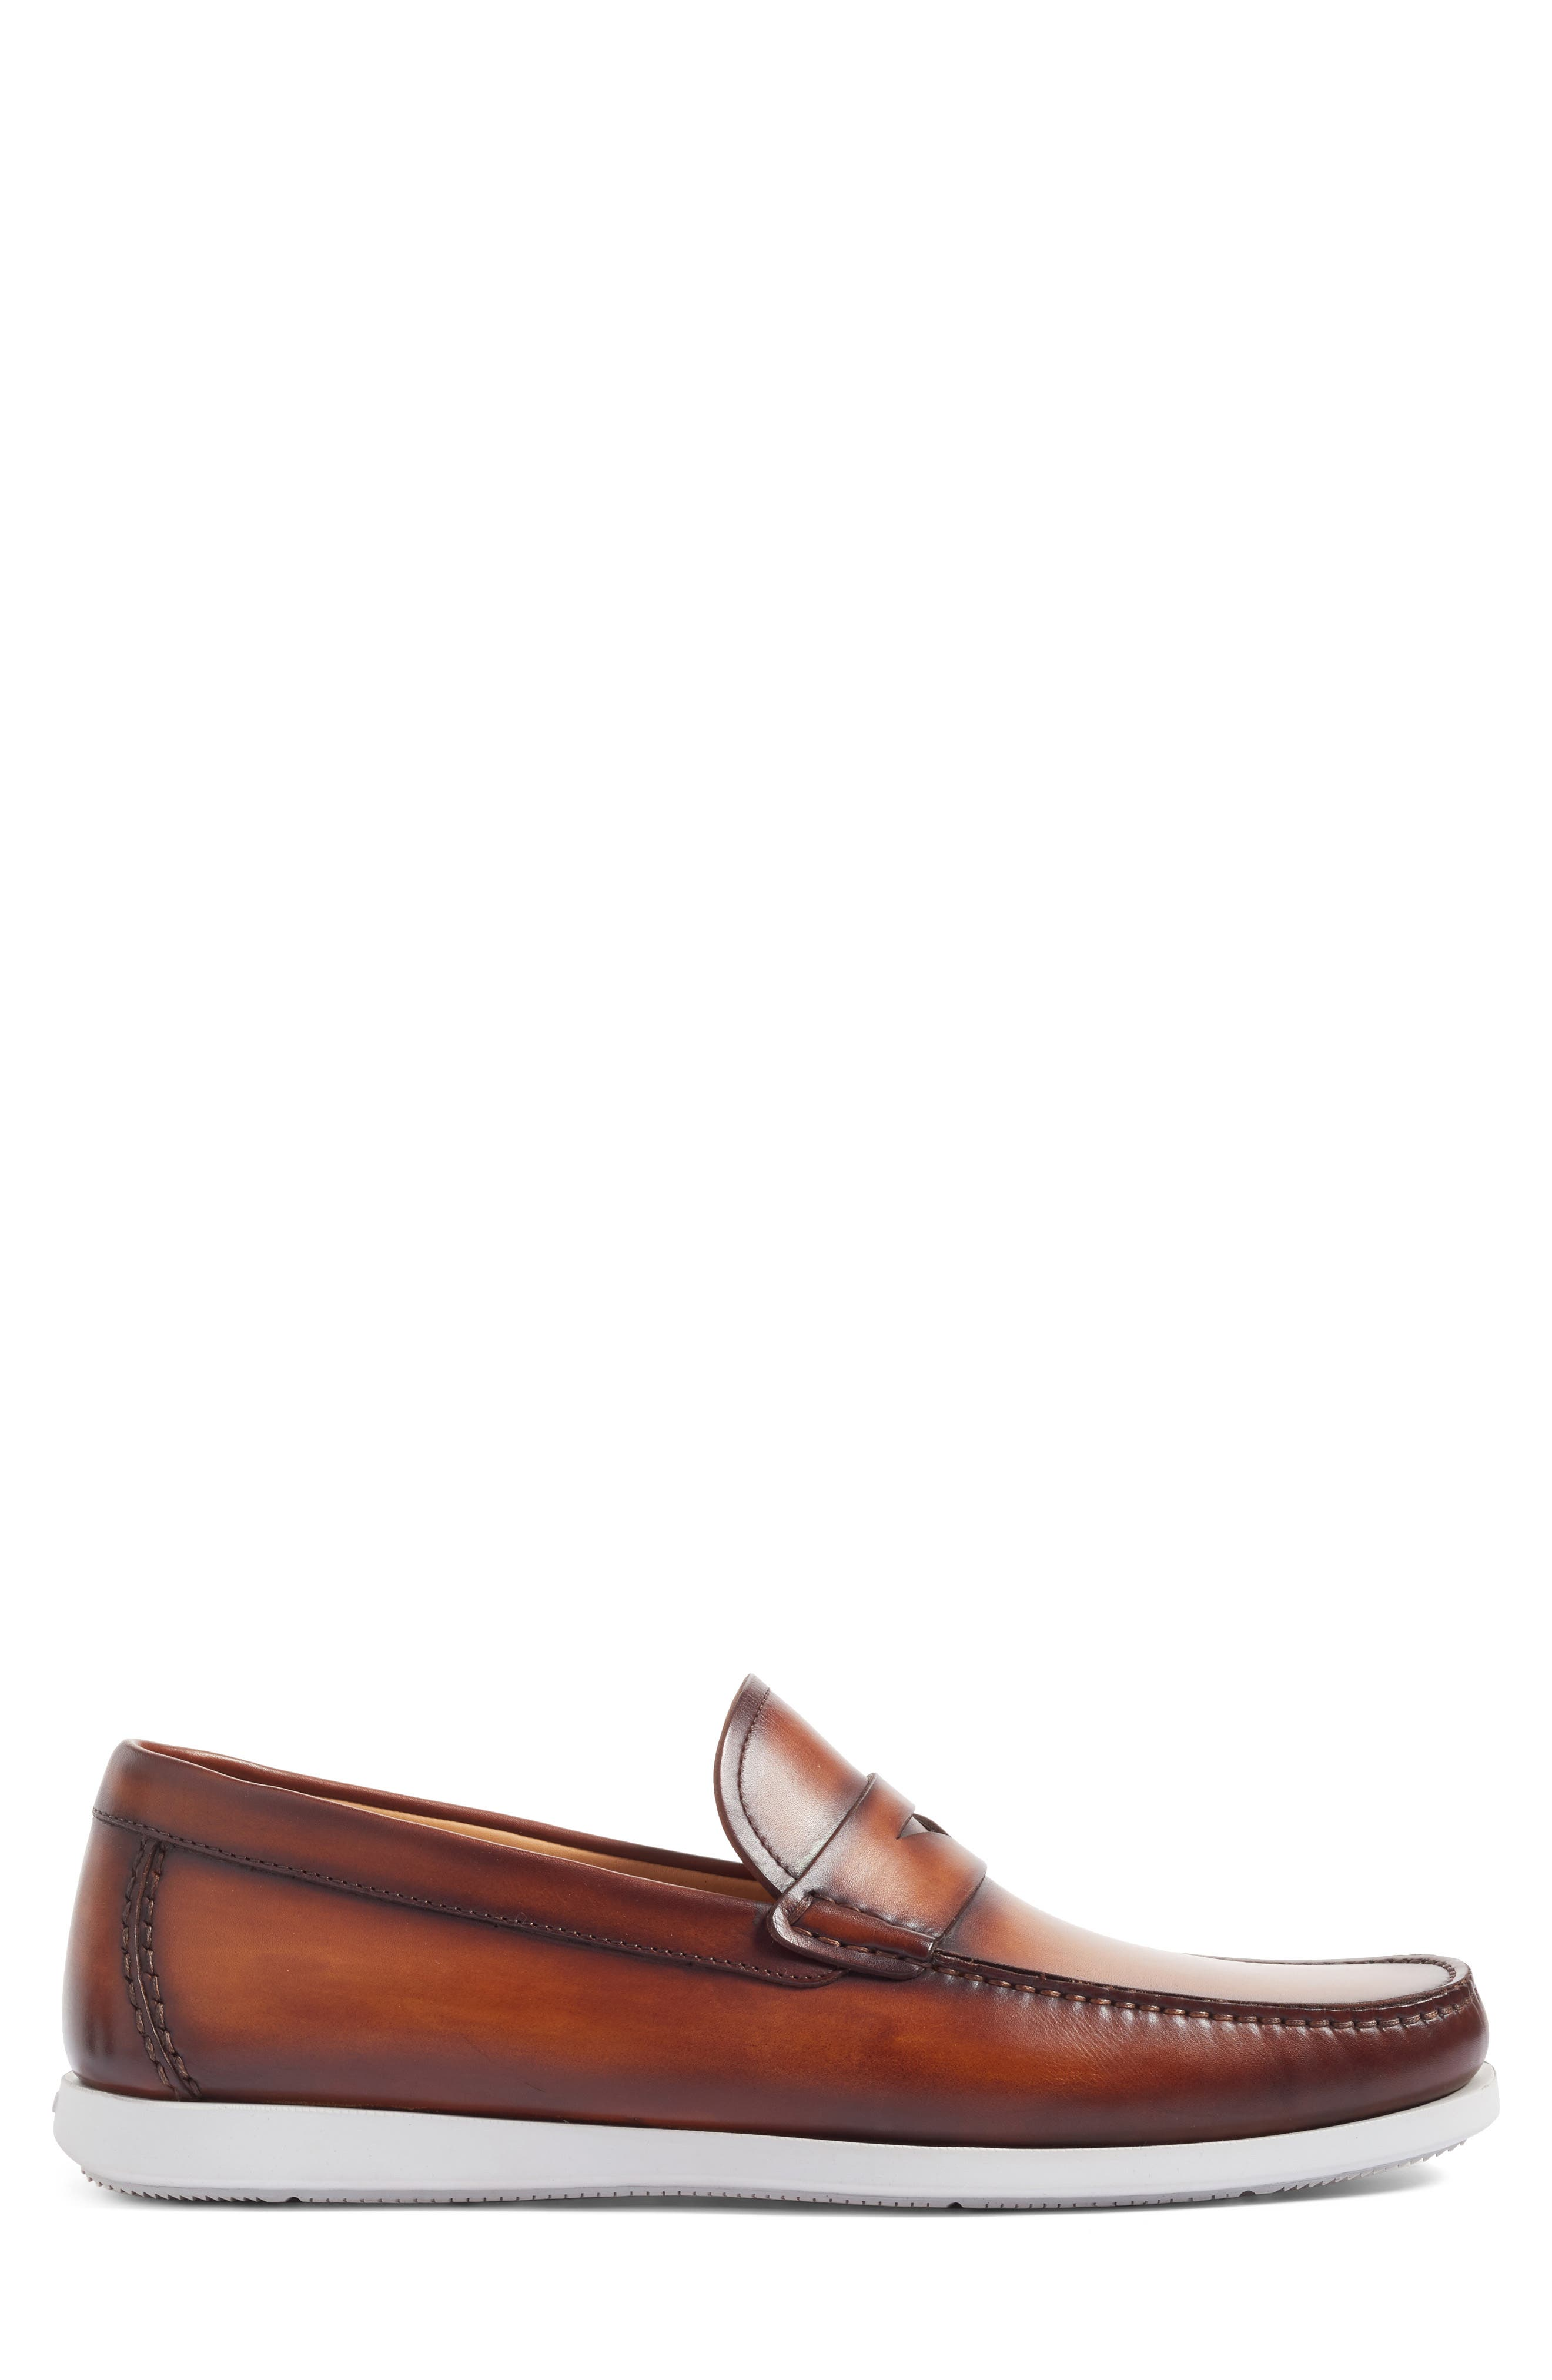 Laguna Penny Loafer,                             Alternate thumbnail 3, color,                             MID-BROWN LEATHER